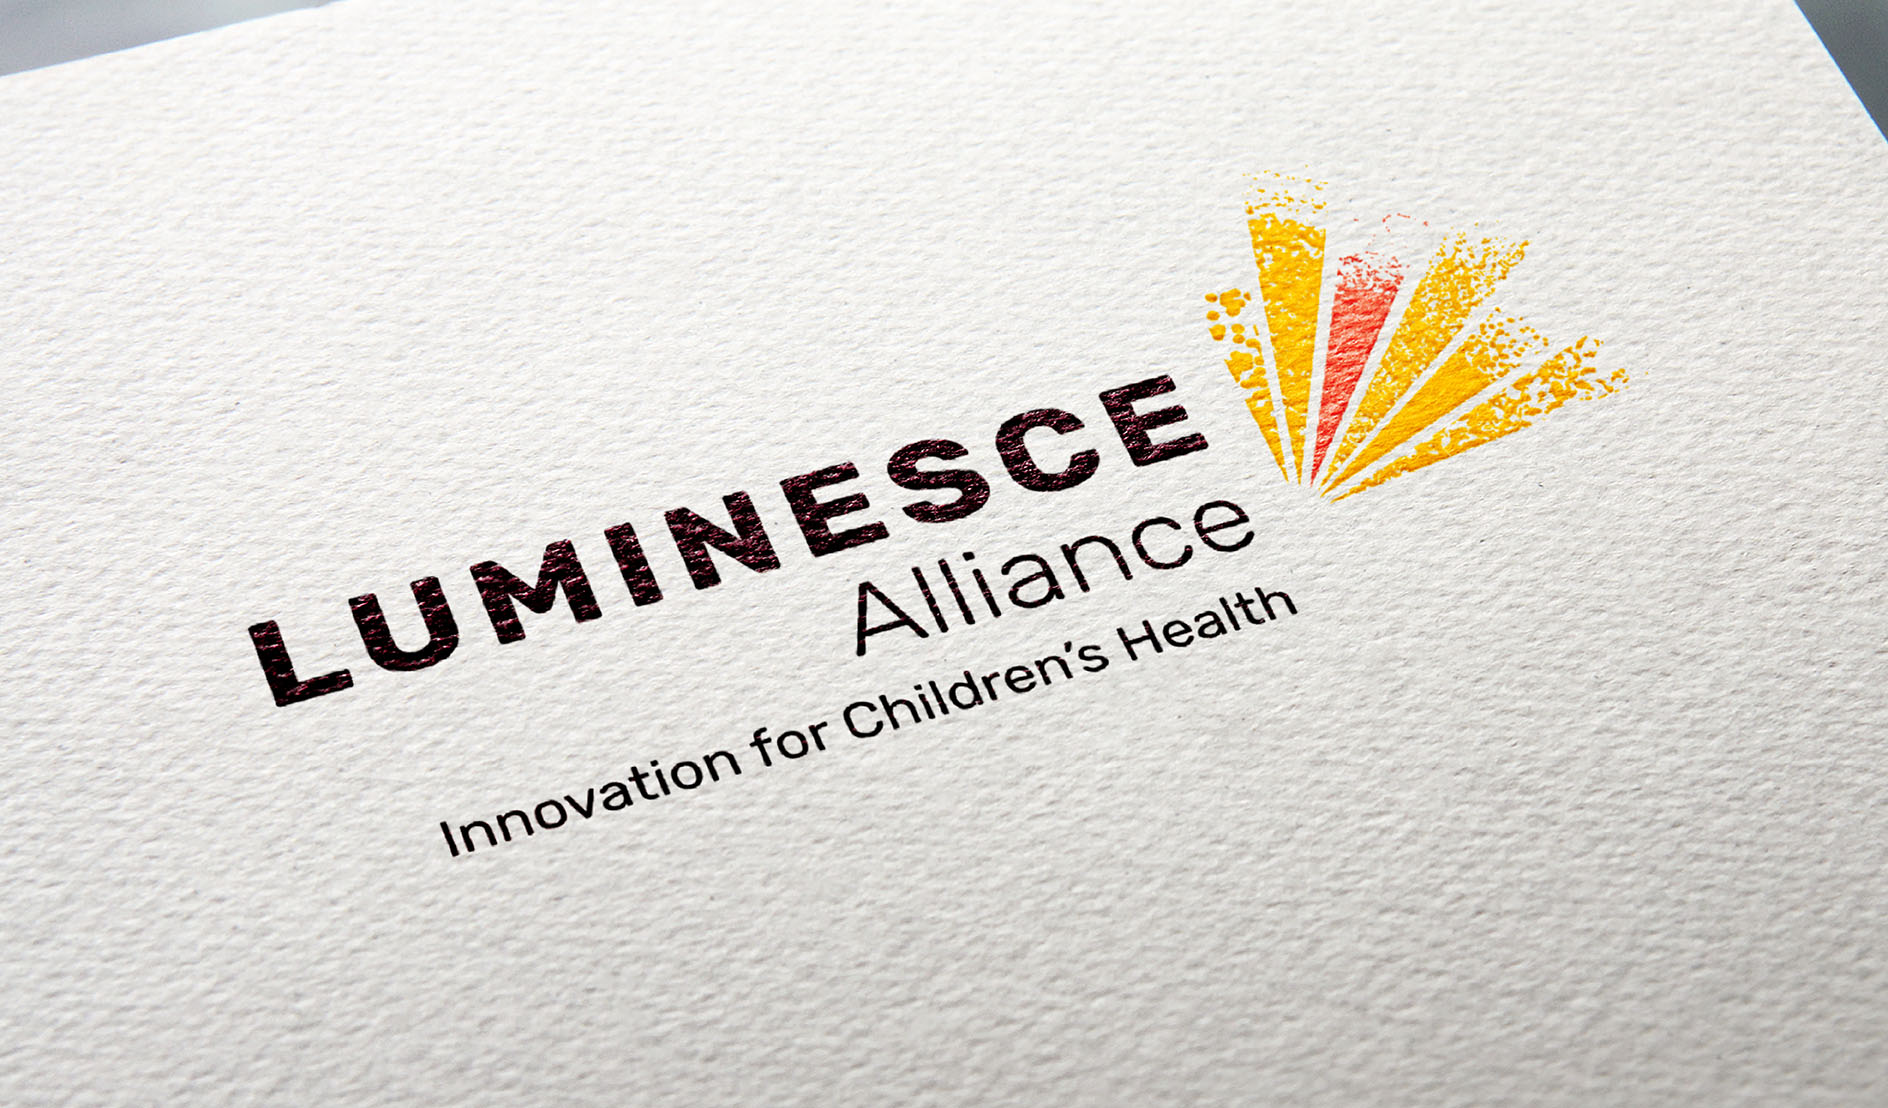 Luminesce Alliance stationary